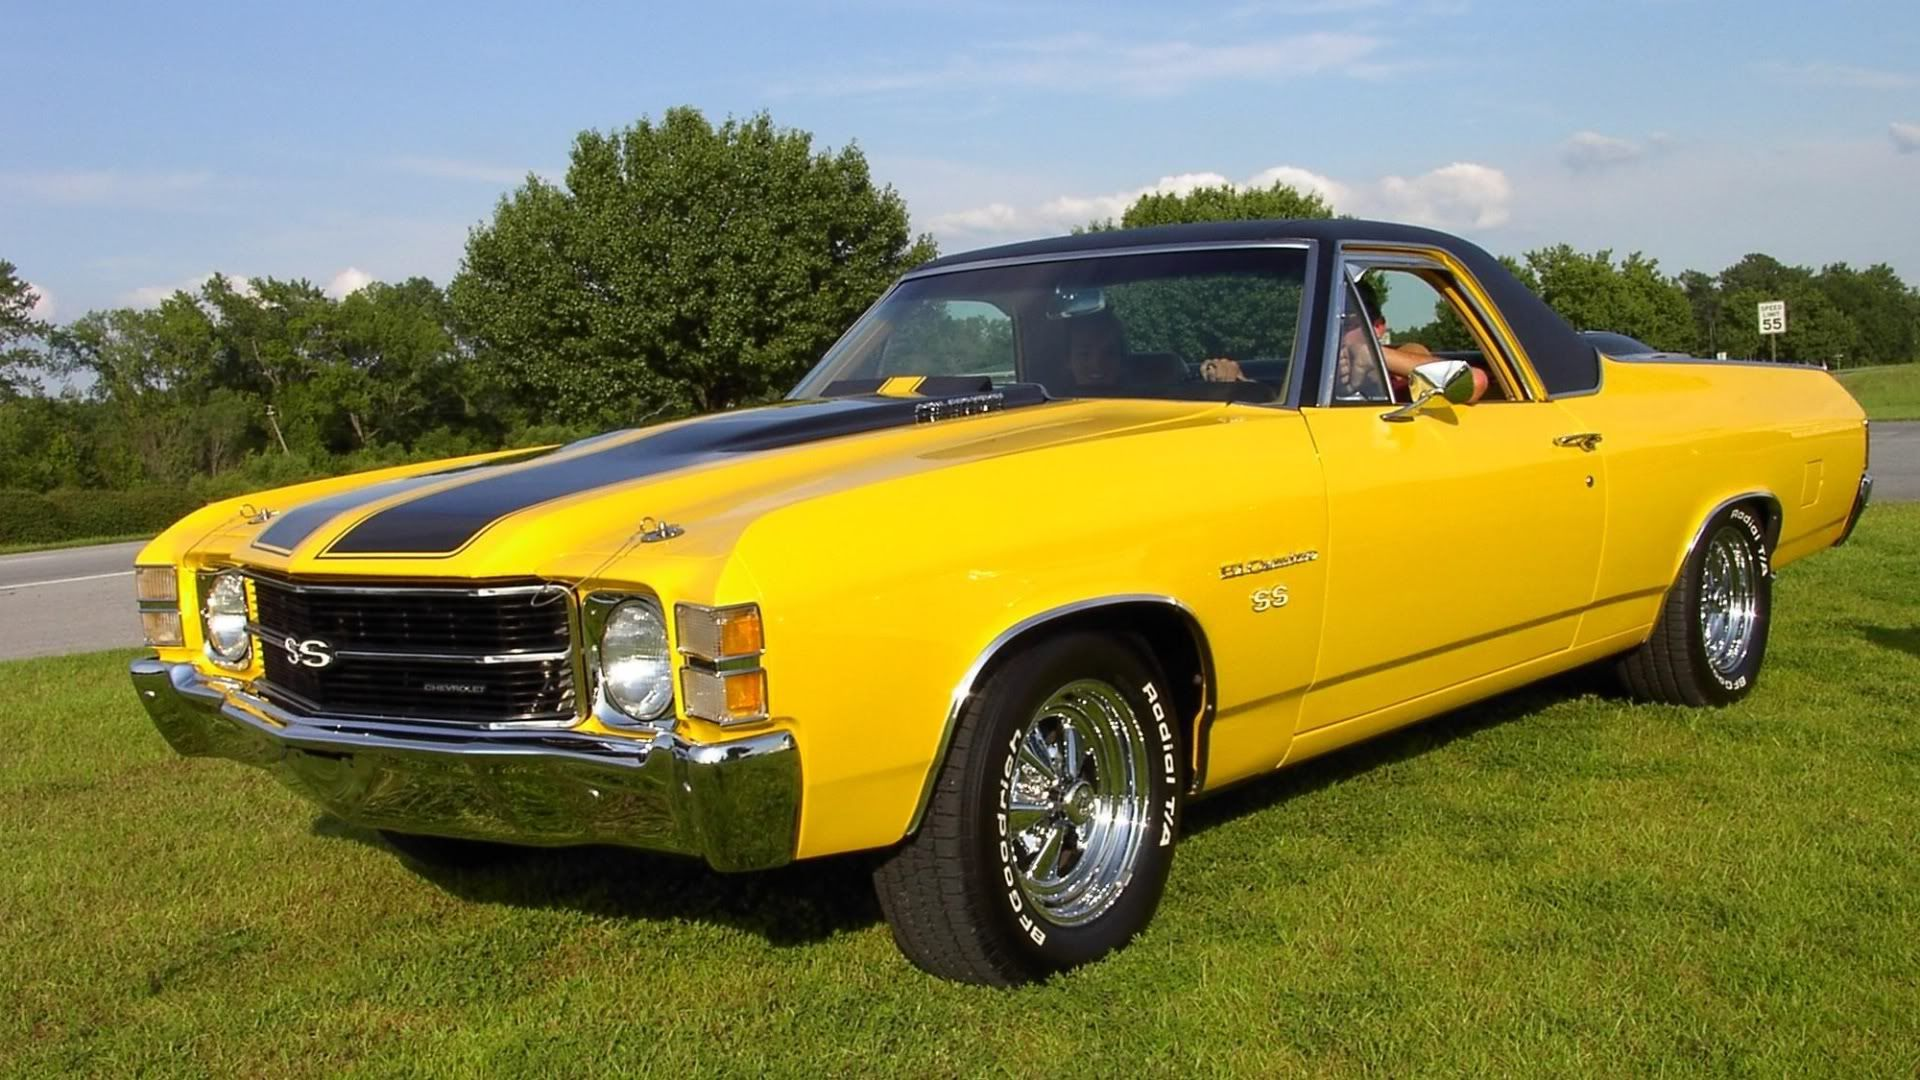 1971 chevrolet el camino ss  Google Search  Vehicle  Pinterest